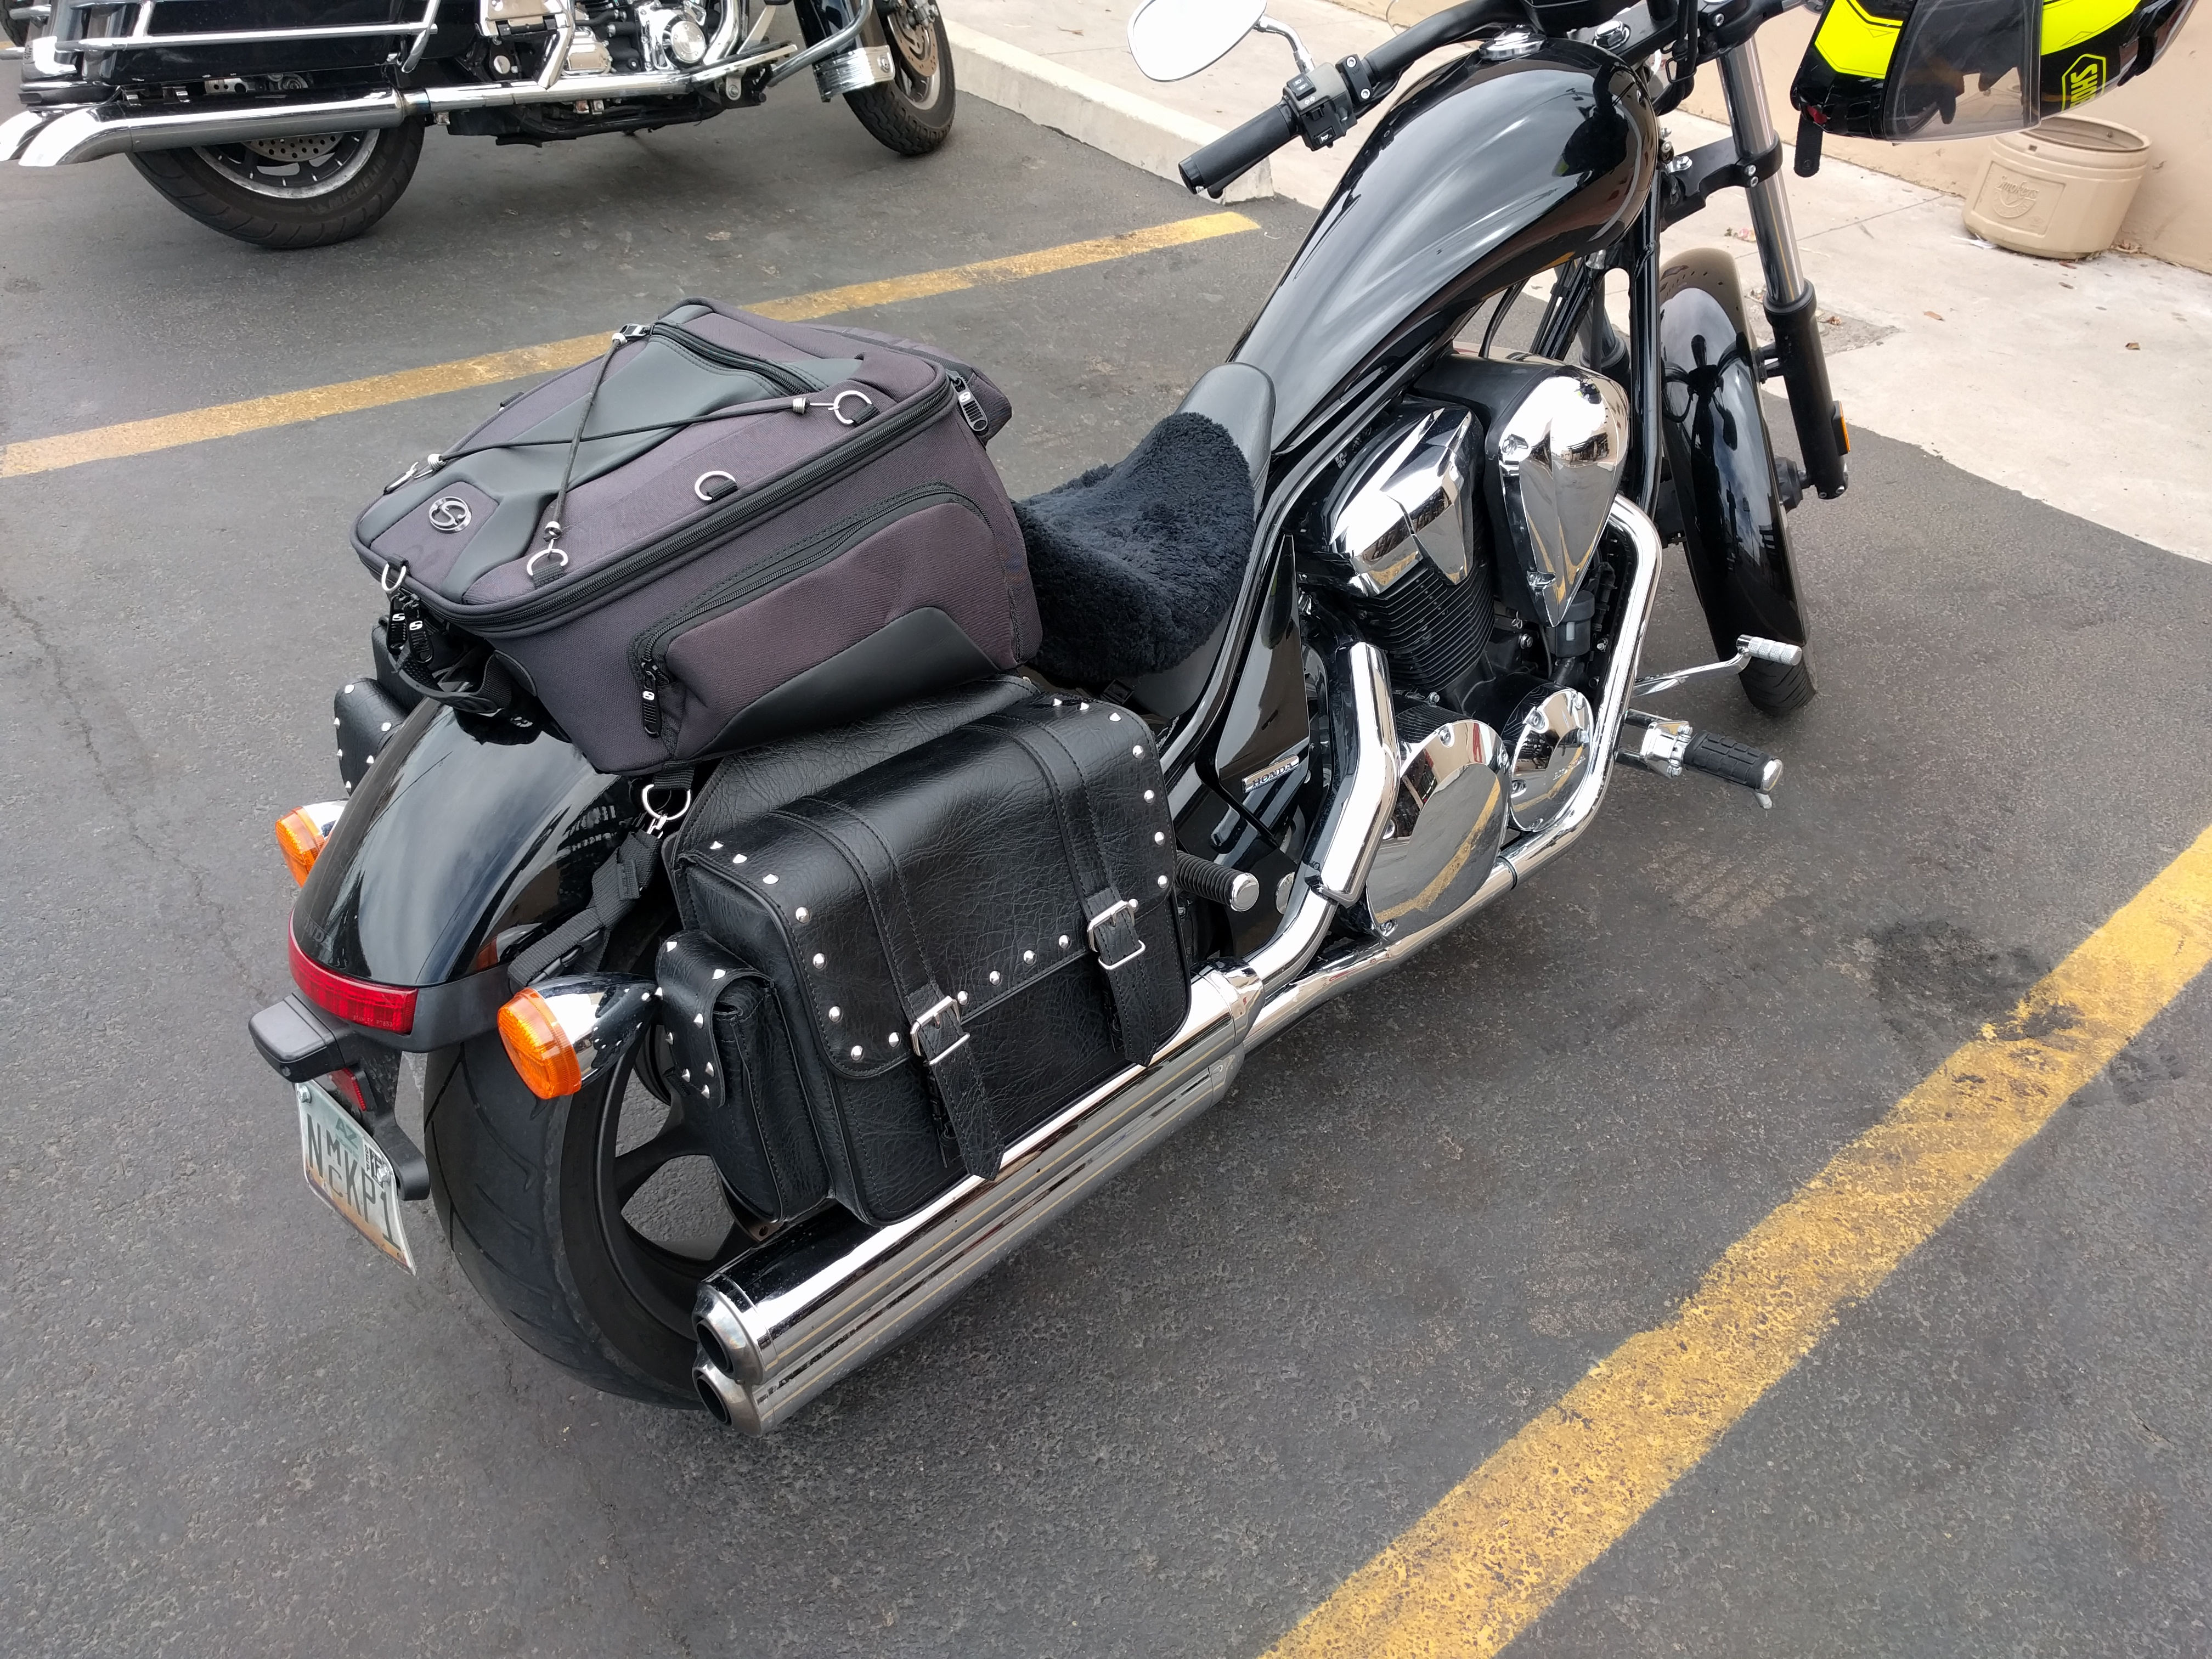 Have Fury, Want Saddlebags?